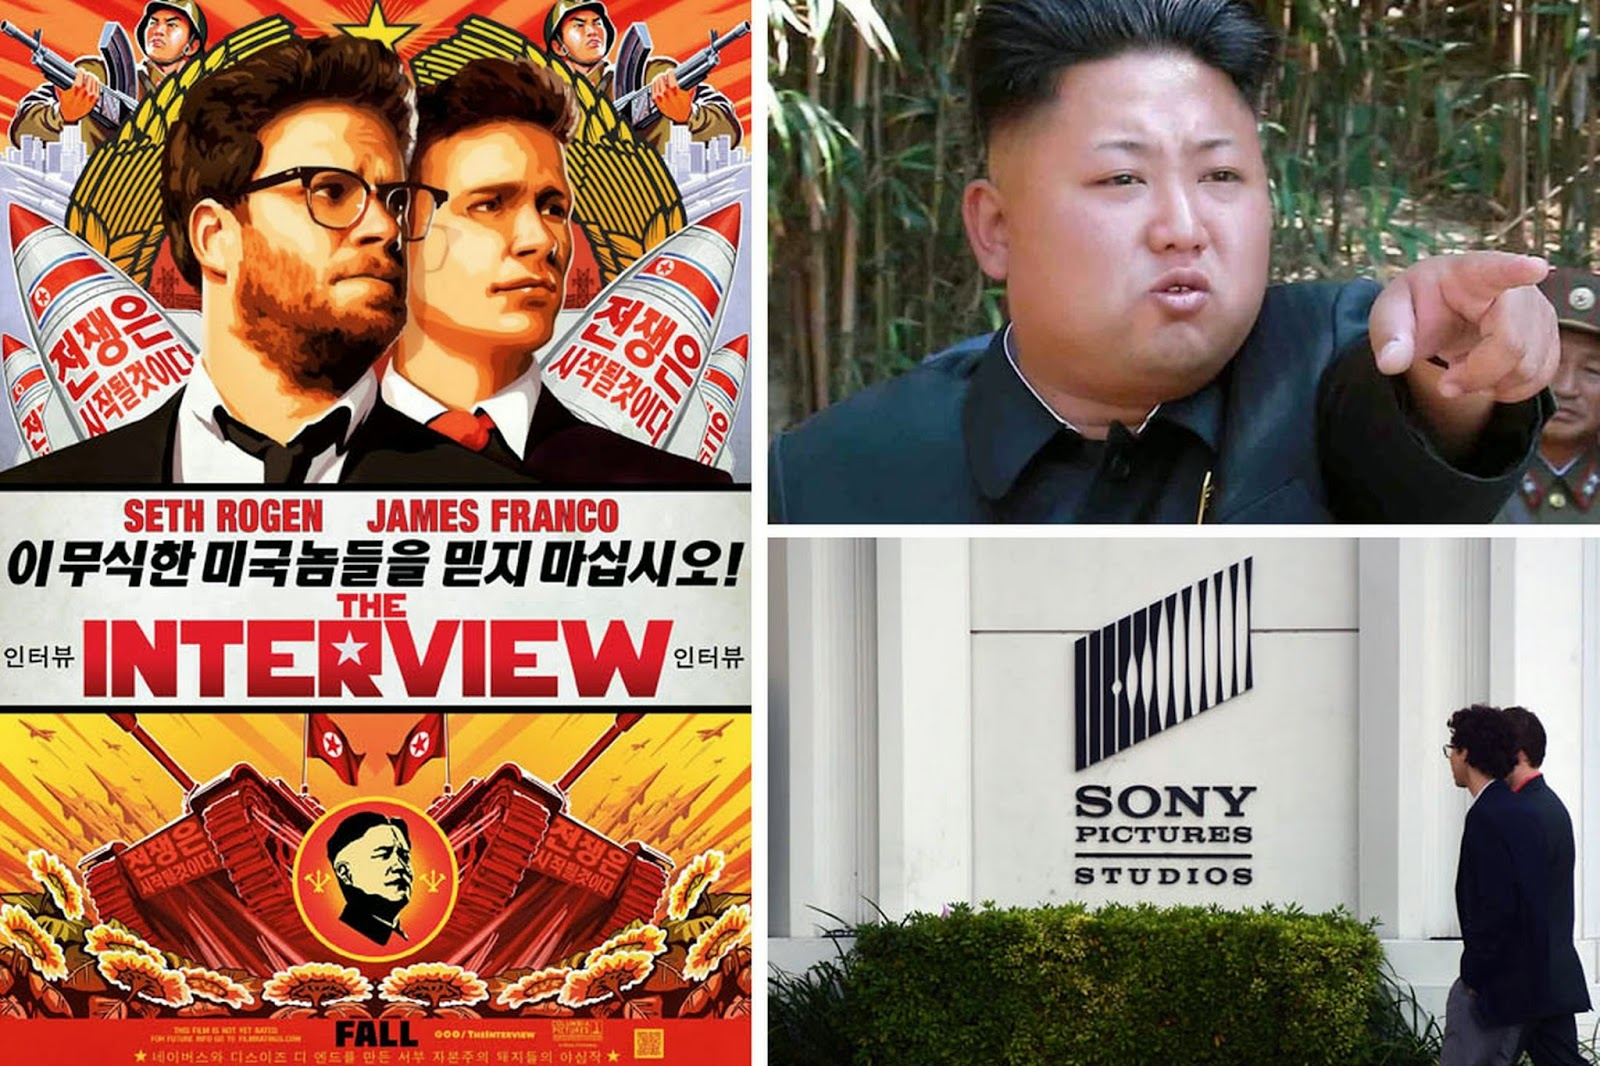 MAIN The Interview Sony Pictures Hack